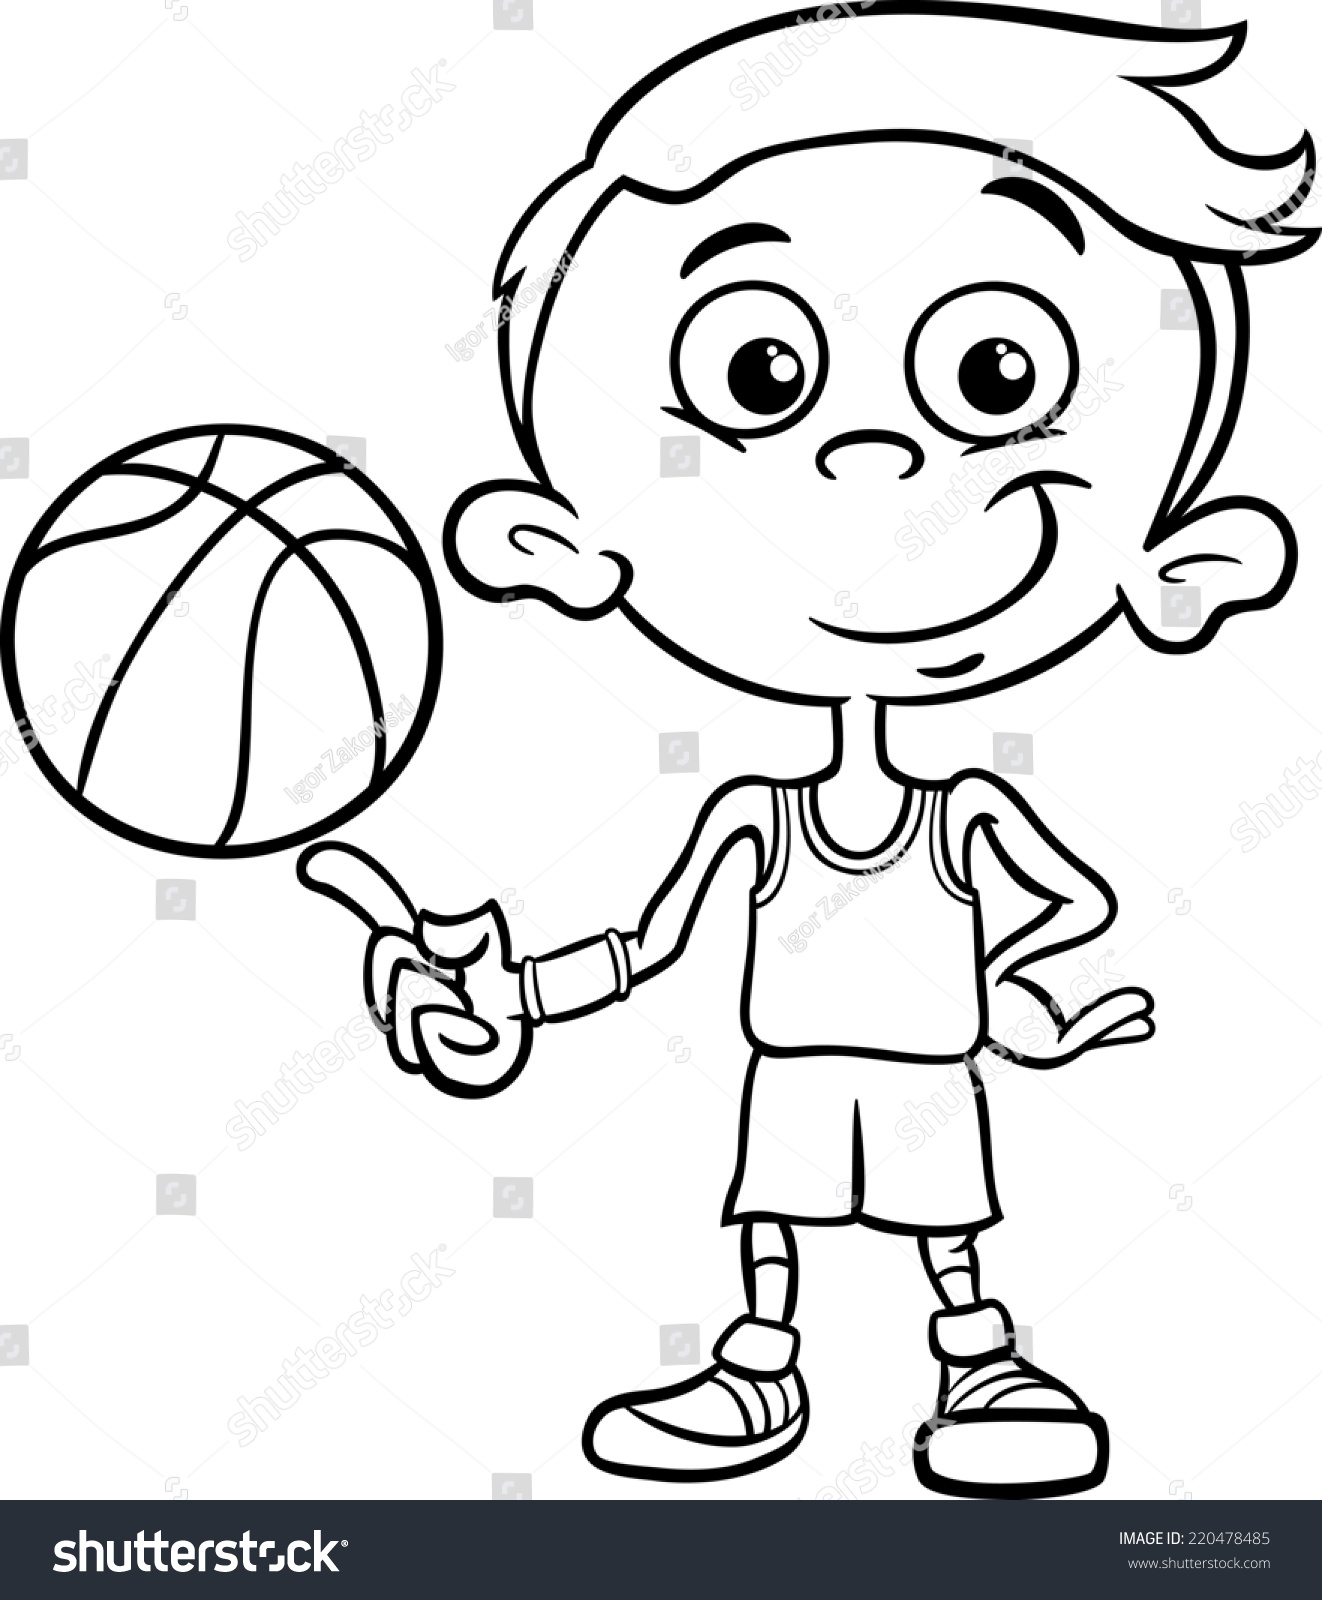 Basketball player cartoon black and white